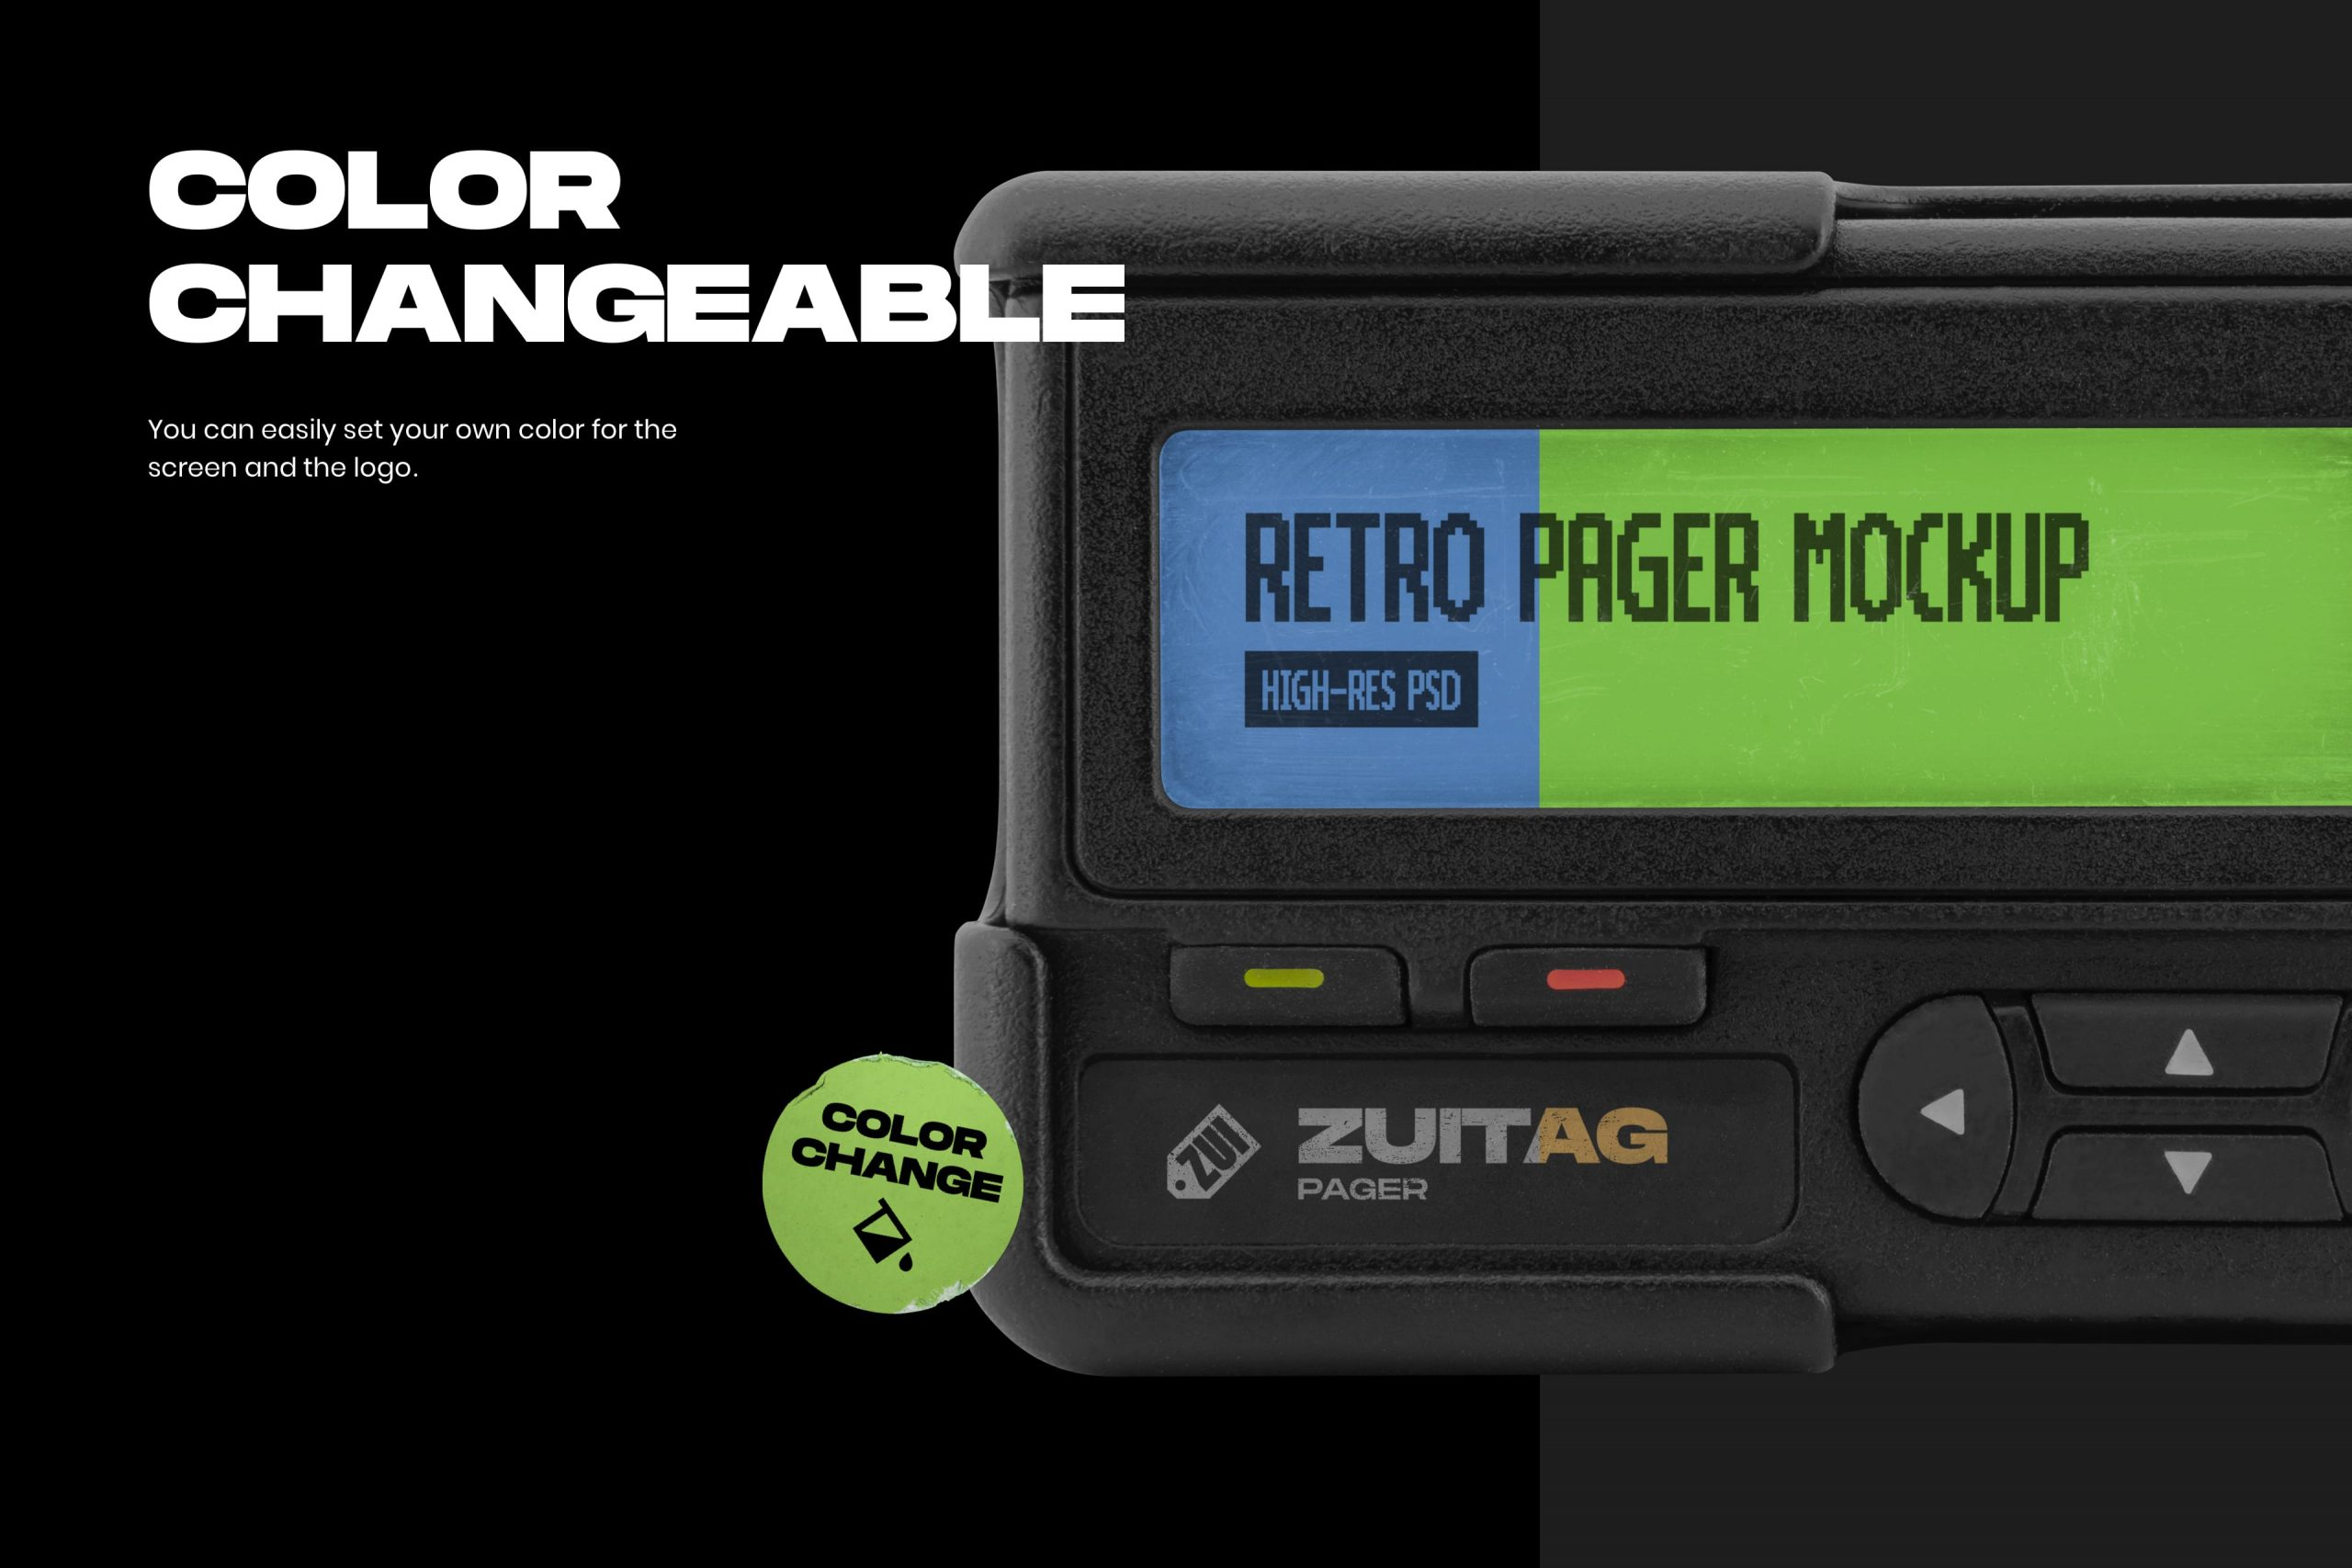 Retro Pager Mockup - Color Changeable